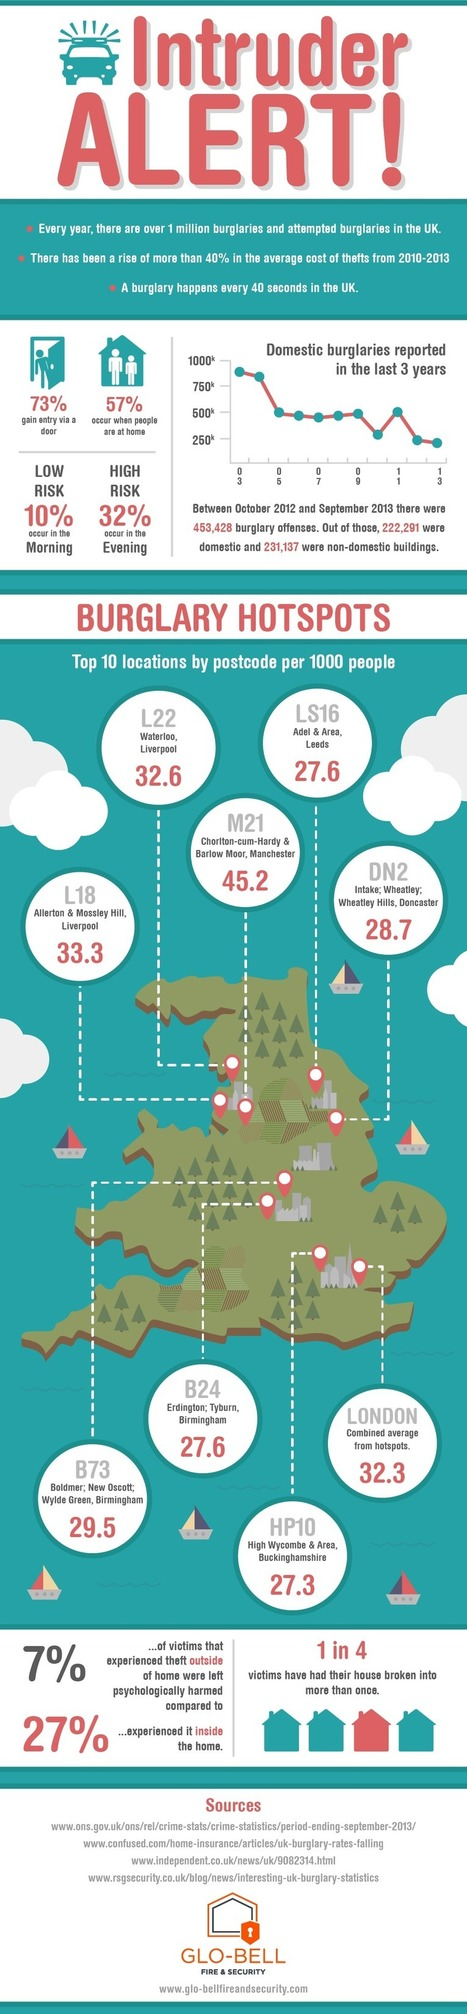 Intruder Alert! UK Burglary Stats Infographic - Glo-Bell Fire and Security | Travel | Scoop.it